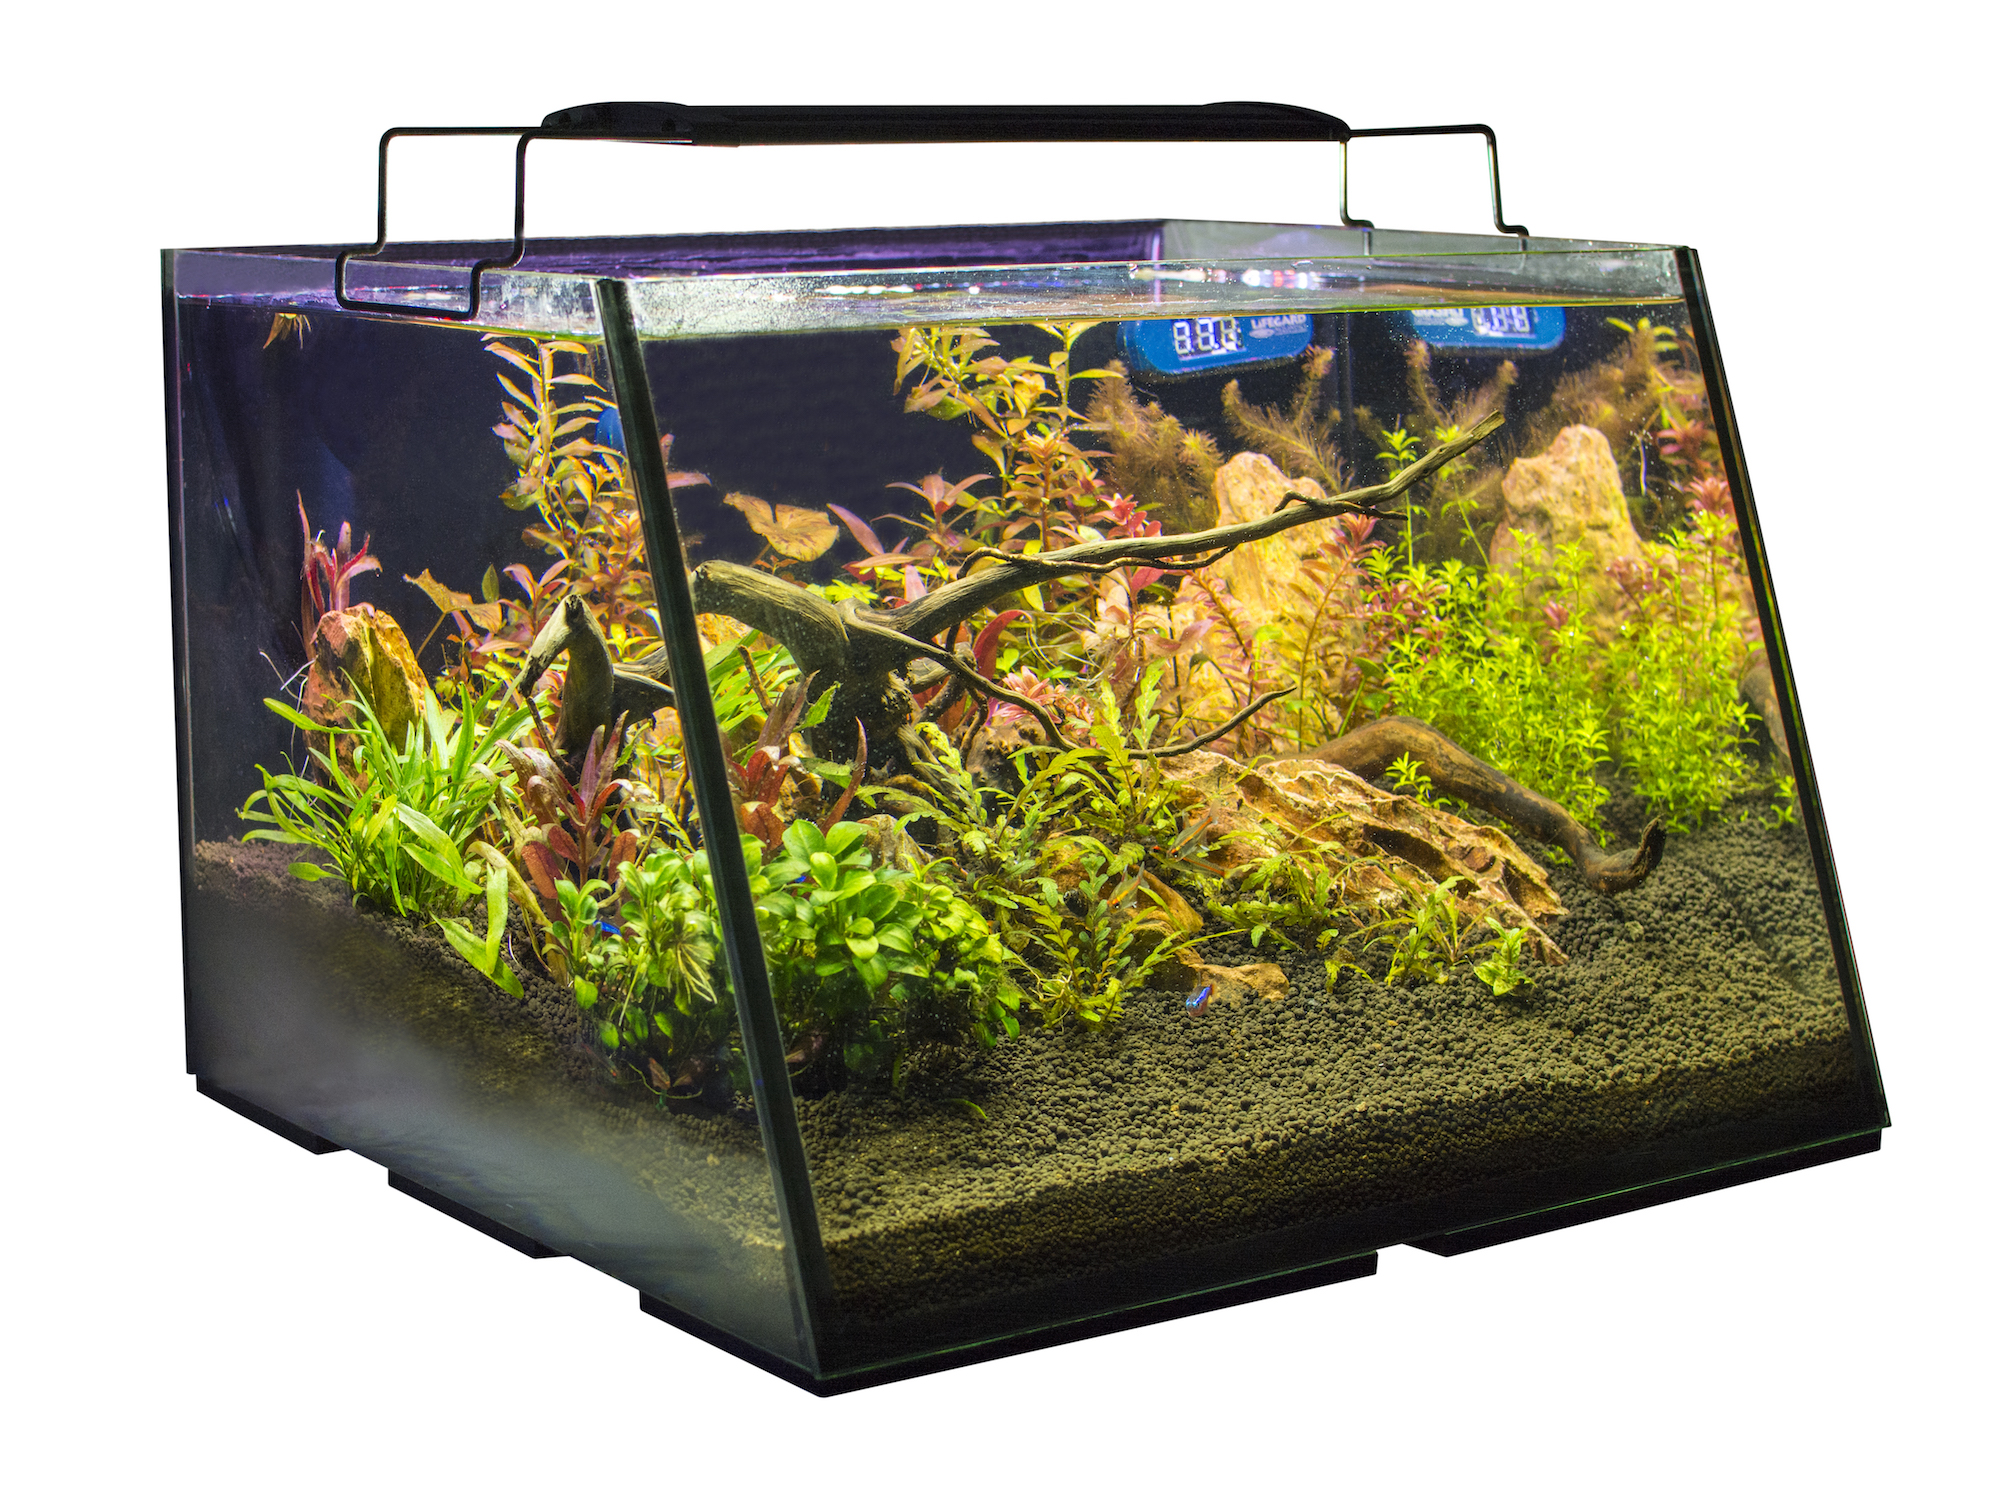 hight resolution of lifegard full view aquariums with back filter patented